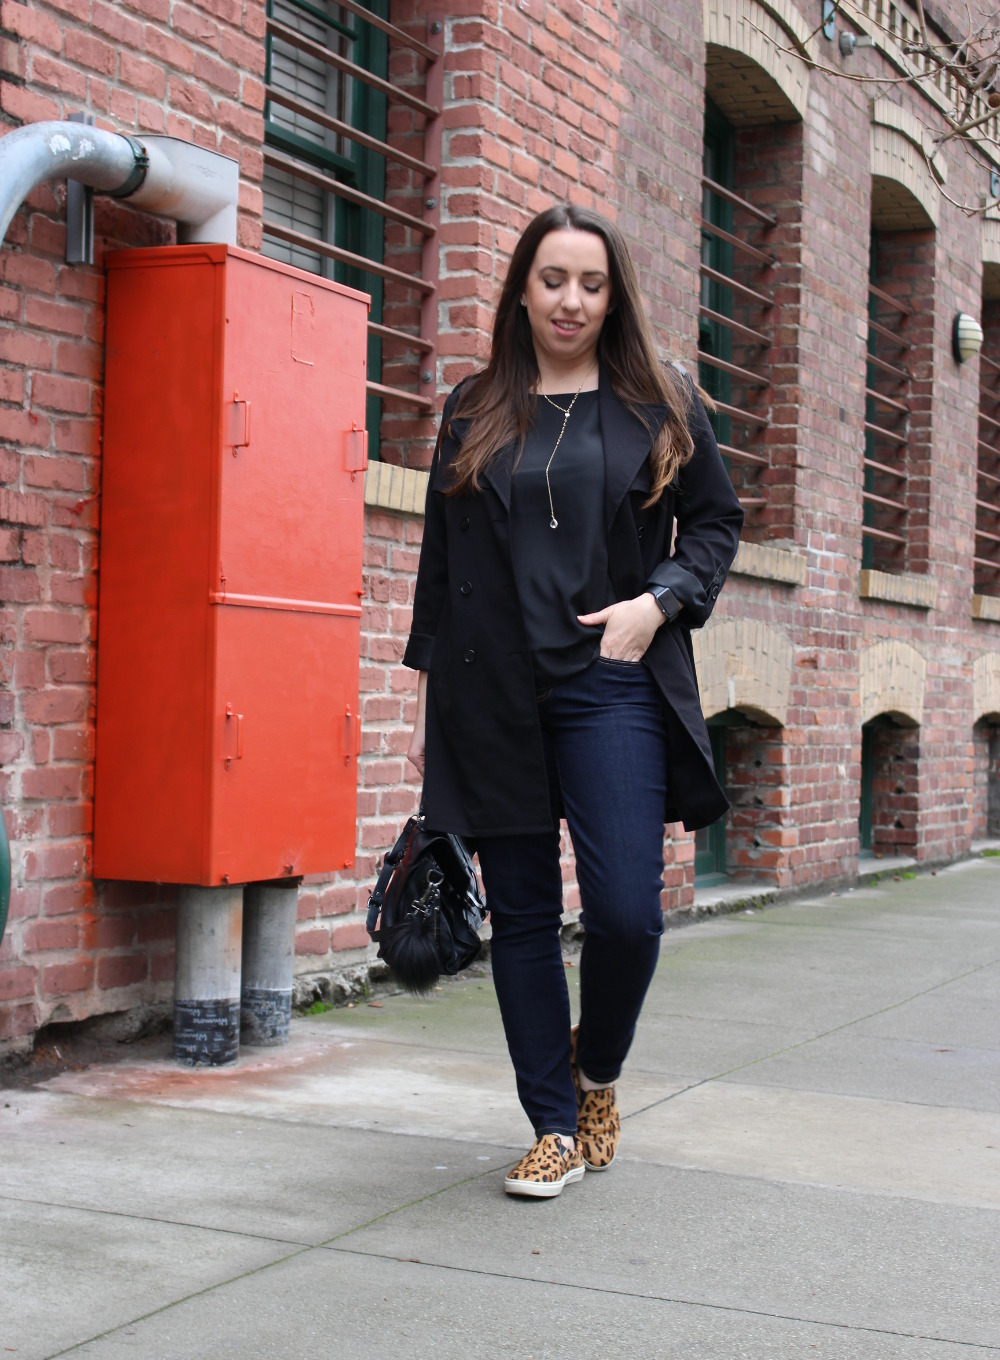 sf style blog - black trench coat